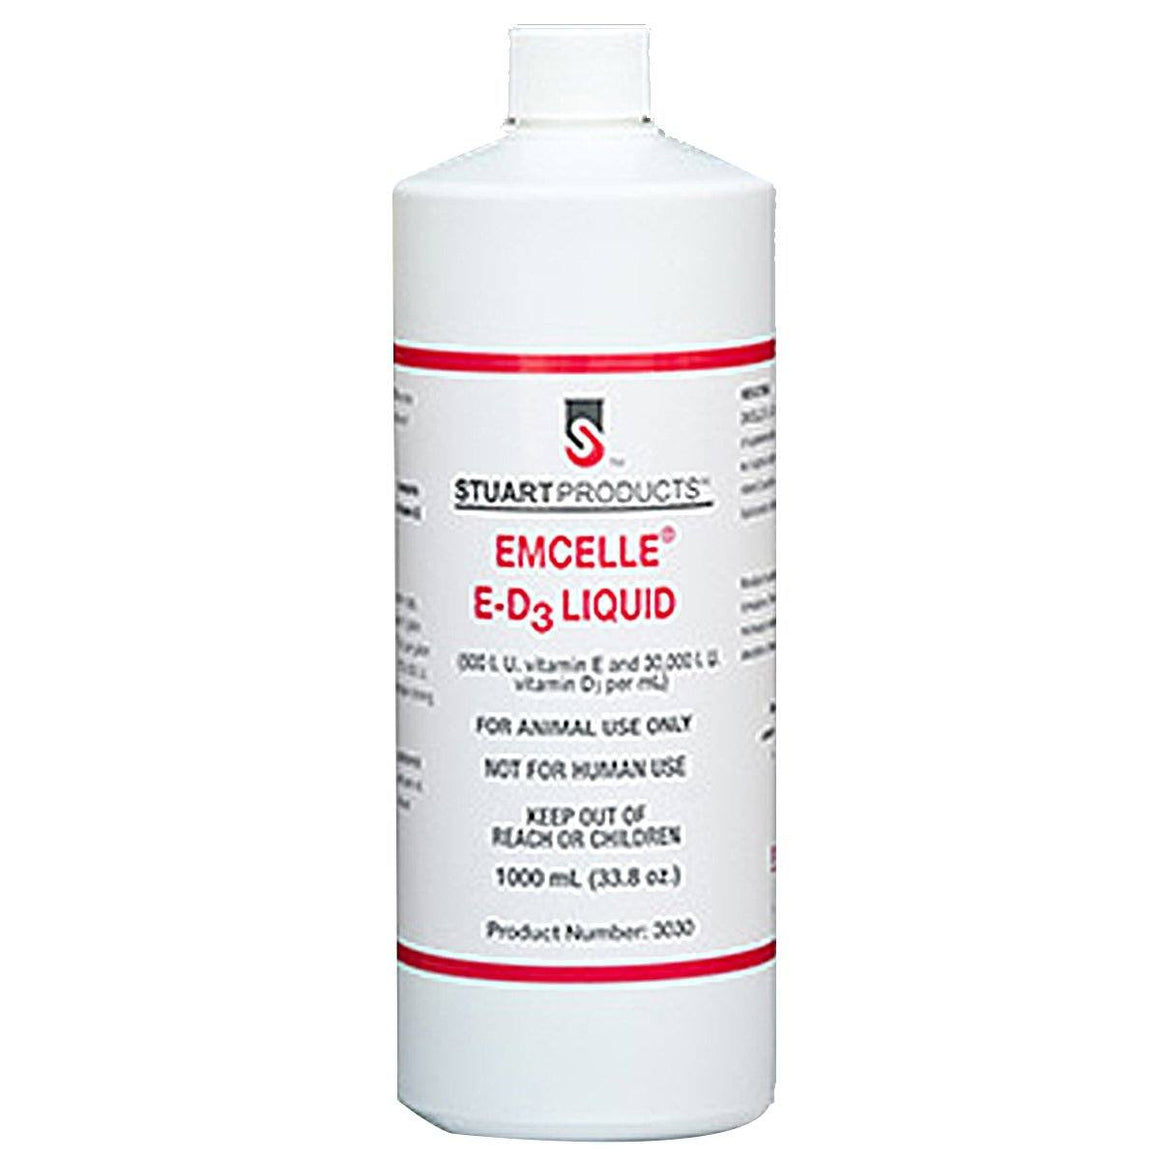 Emcelle E-D3 Liquid 1000Ml